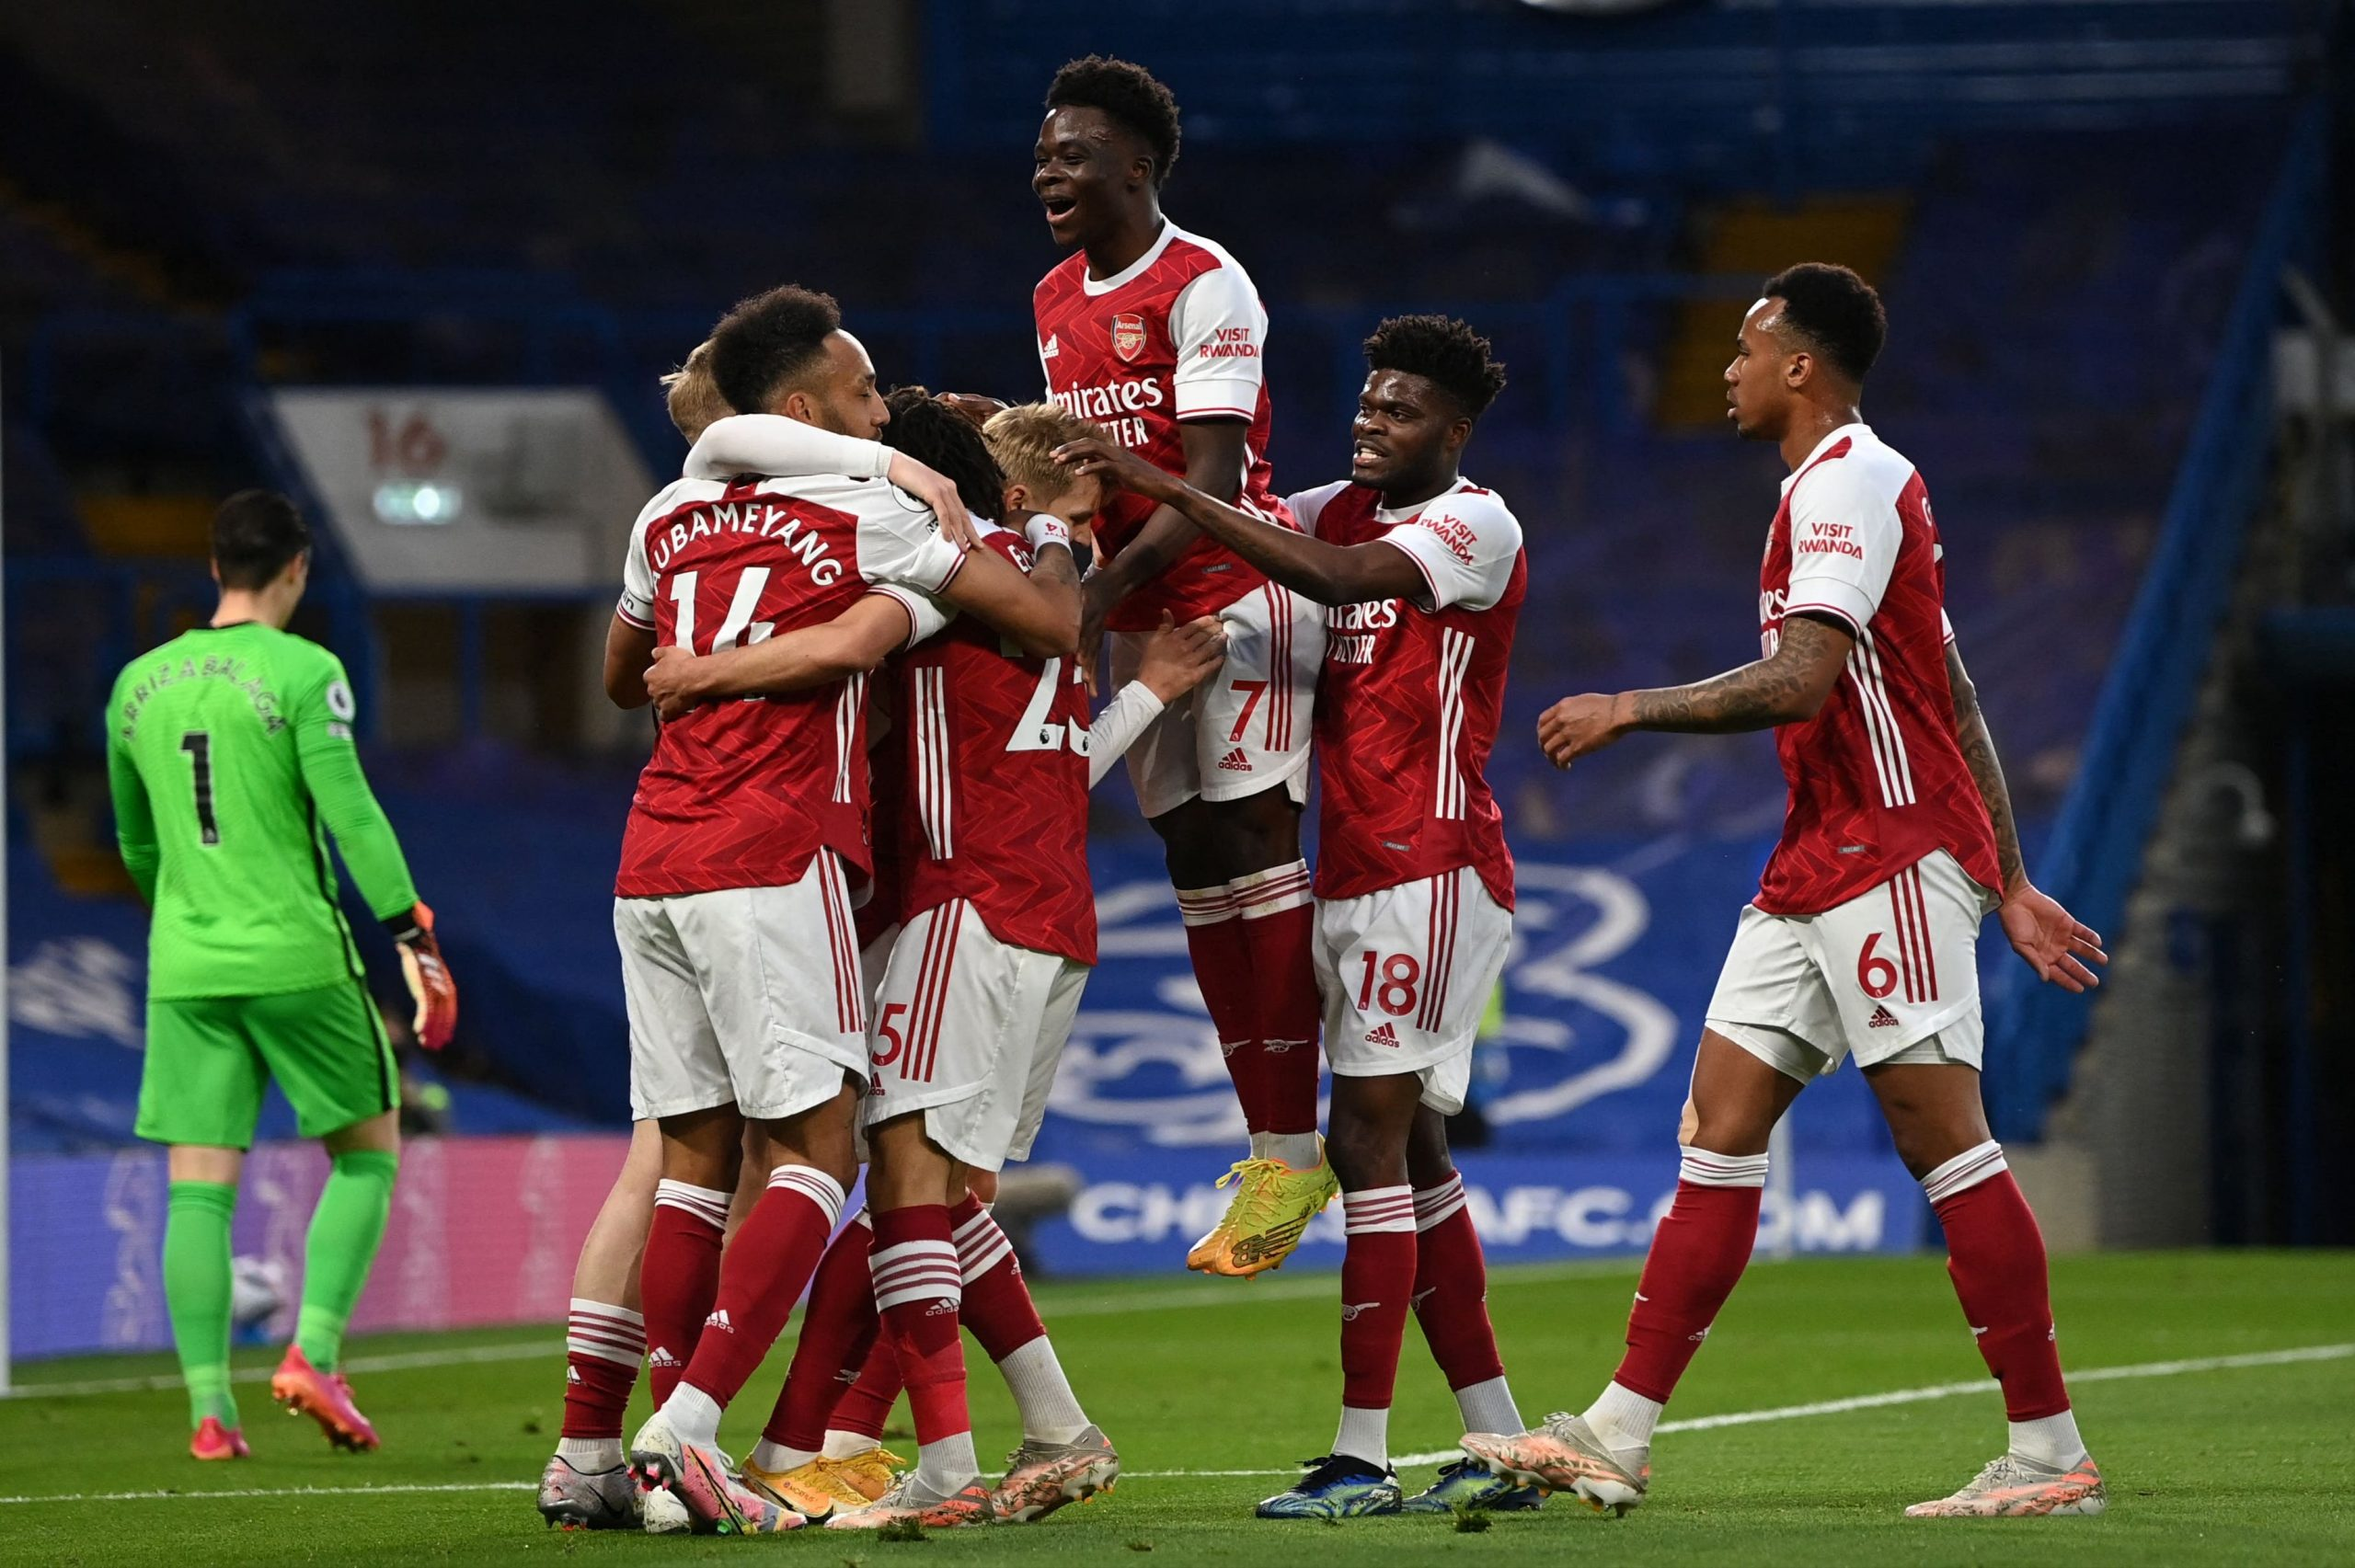 New deal for Emile Smith Rowe a priority as youngster showcases talent to inspire Arsenal